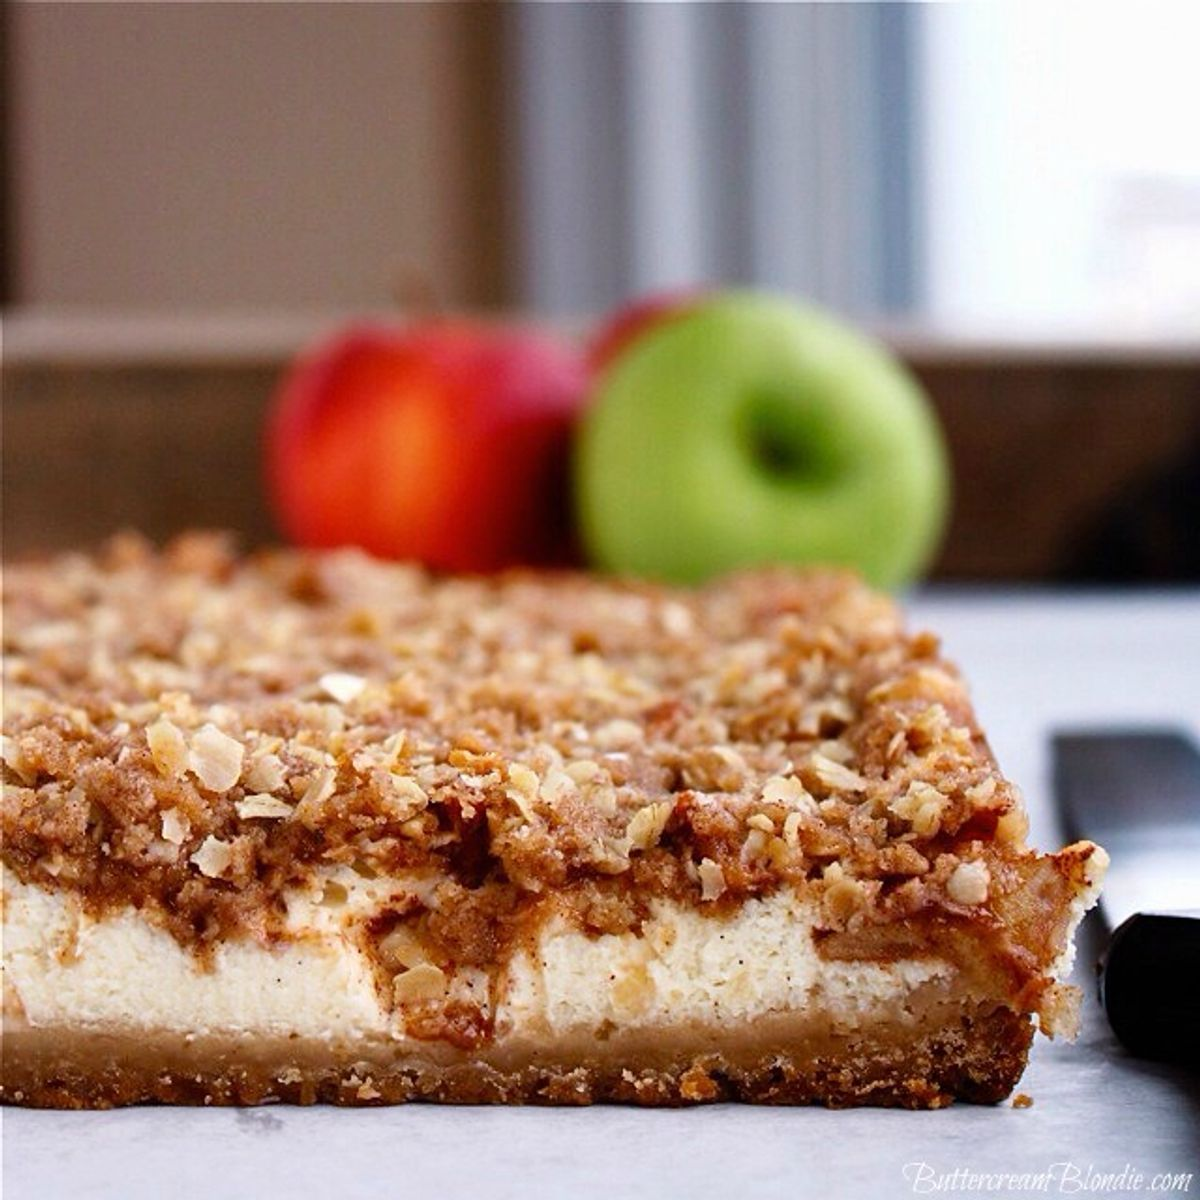 These spiked apple crisp cheesecake bars are better than any pumpkin dessert you'll have this fall